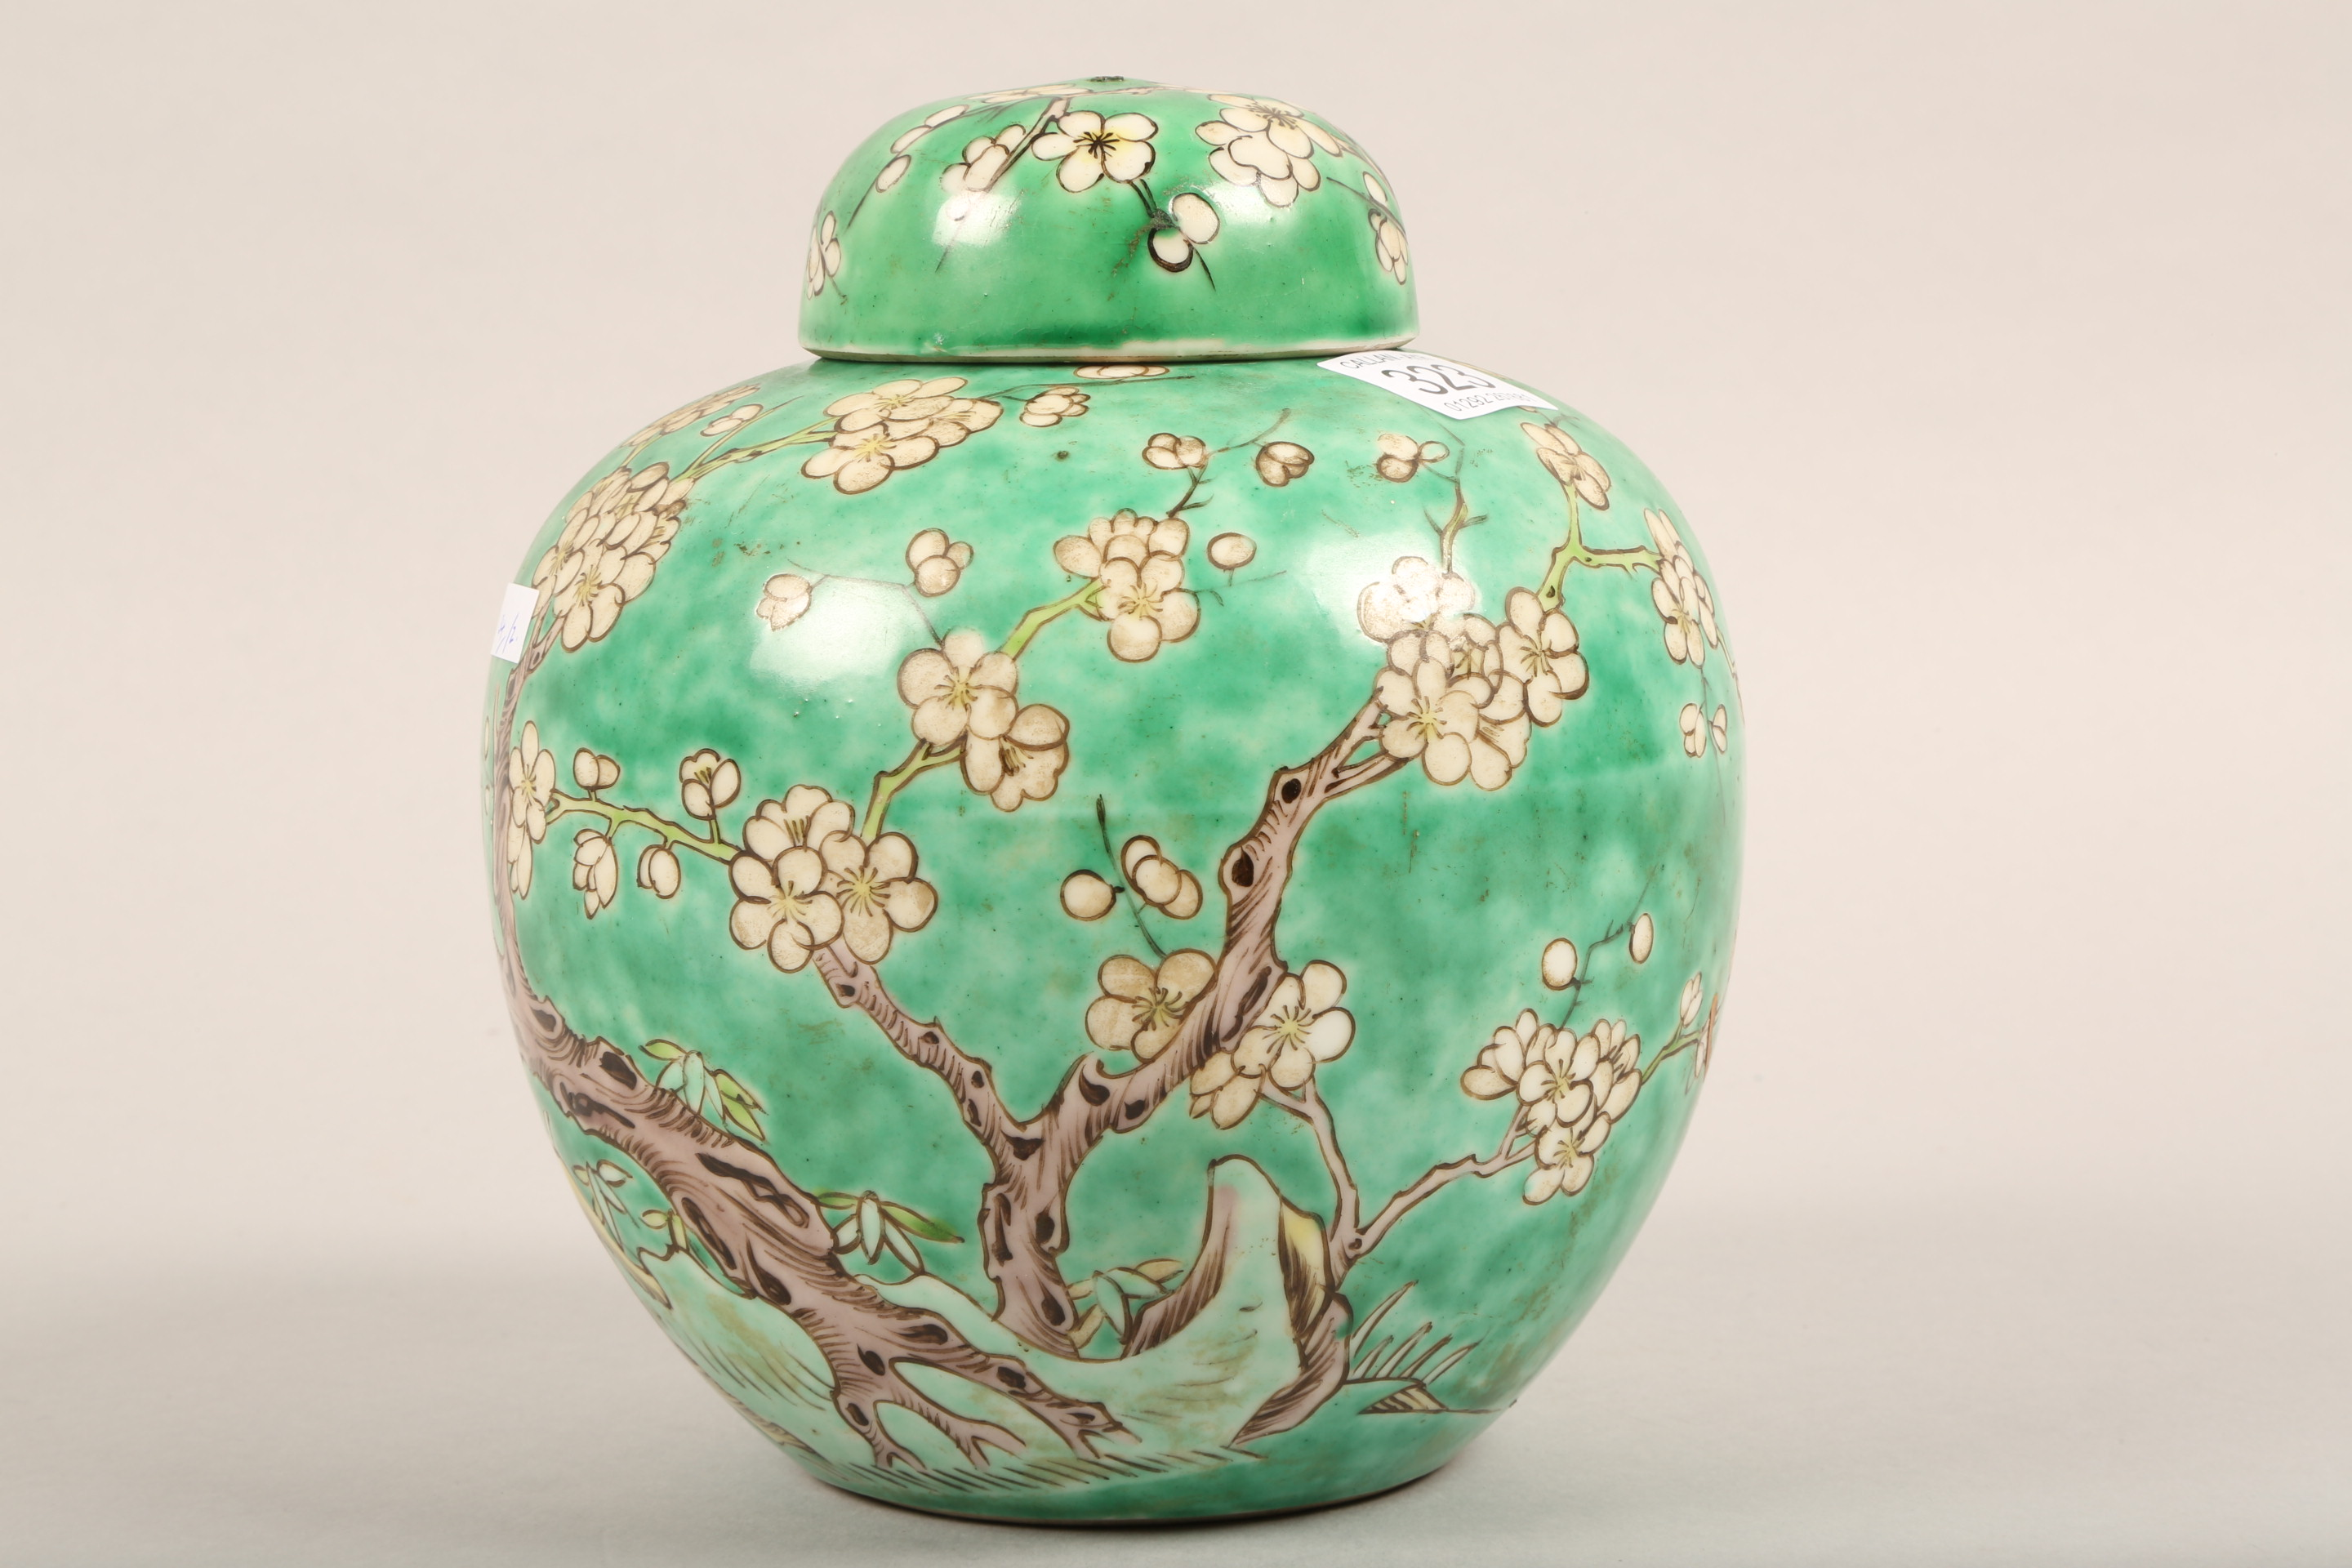 19th/20th century Chinese ginger jar and cover, green ground decorated with birds in a flowering - Image 3 of 6